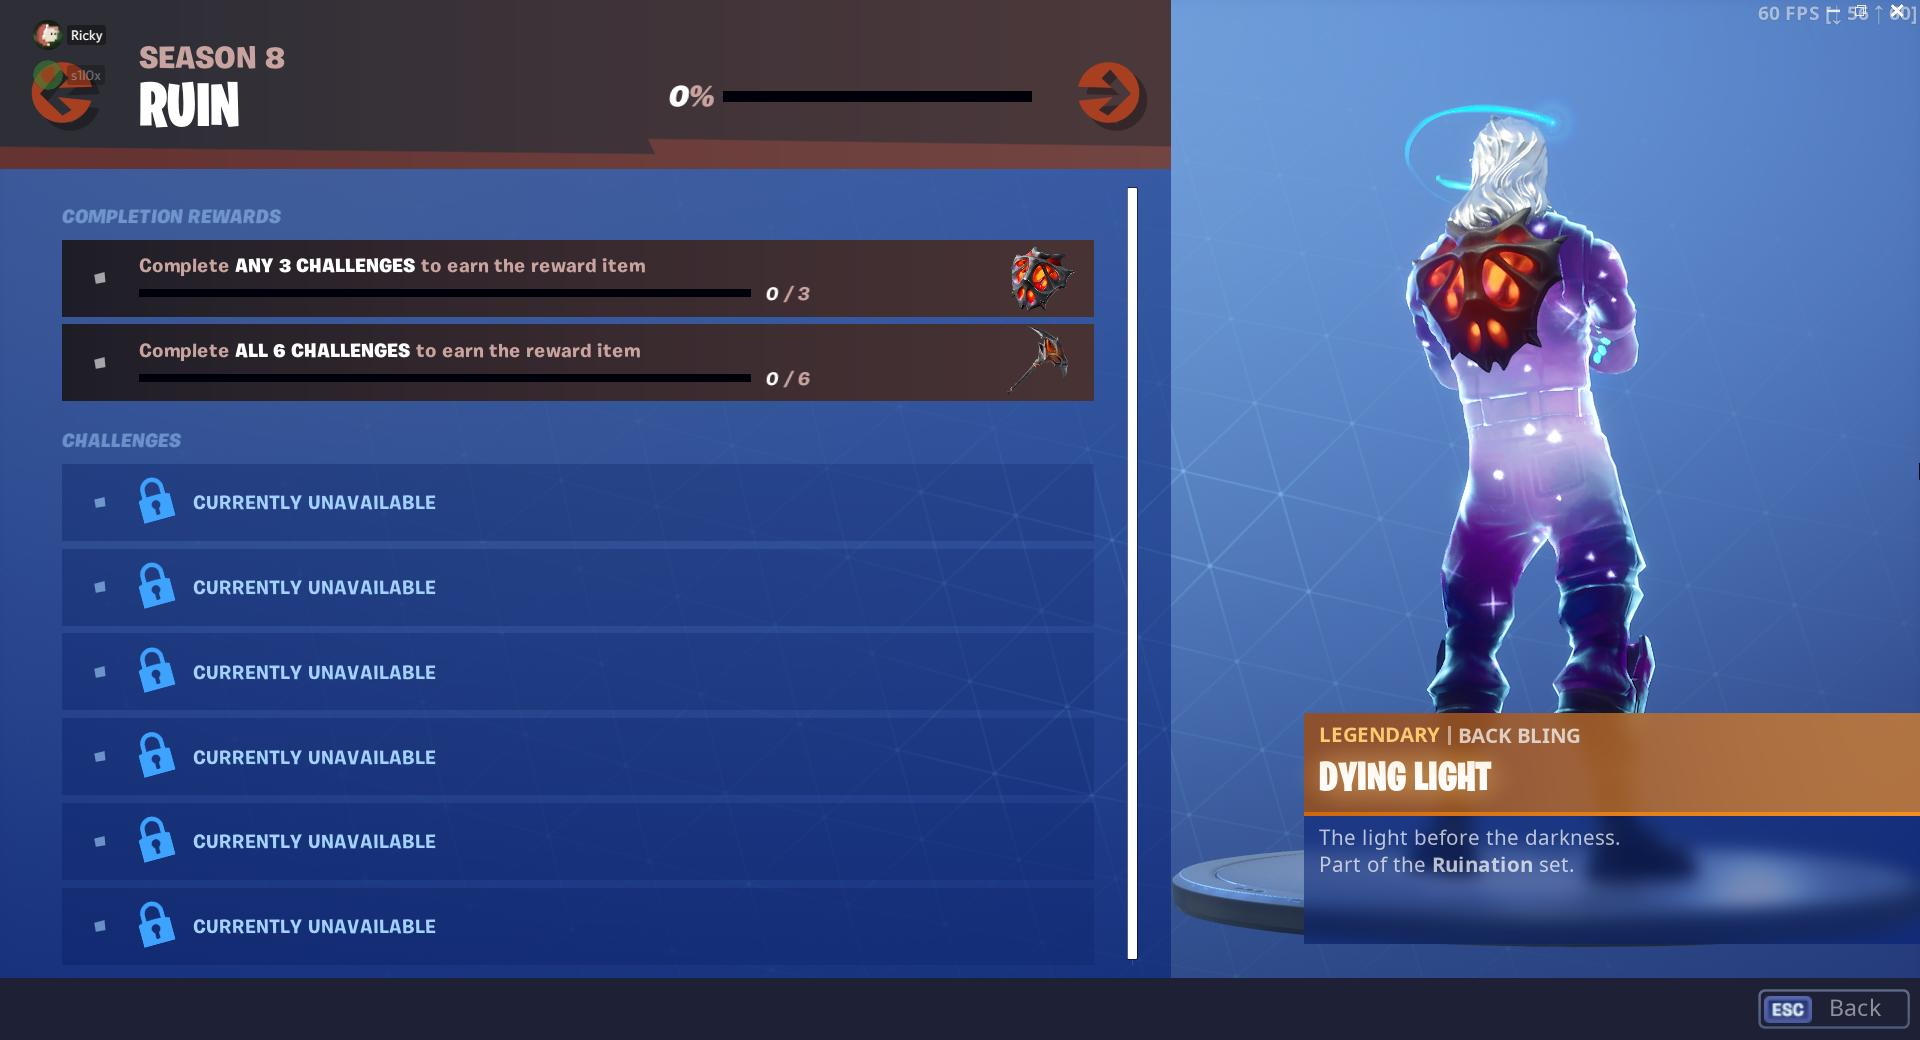 Fortnite Discovery Week 8 Ruin Skin Challenges and Rewards Now